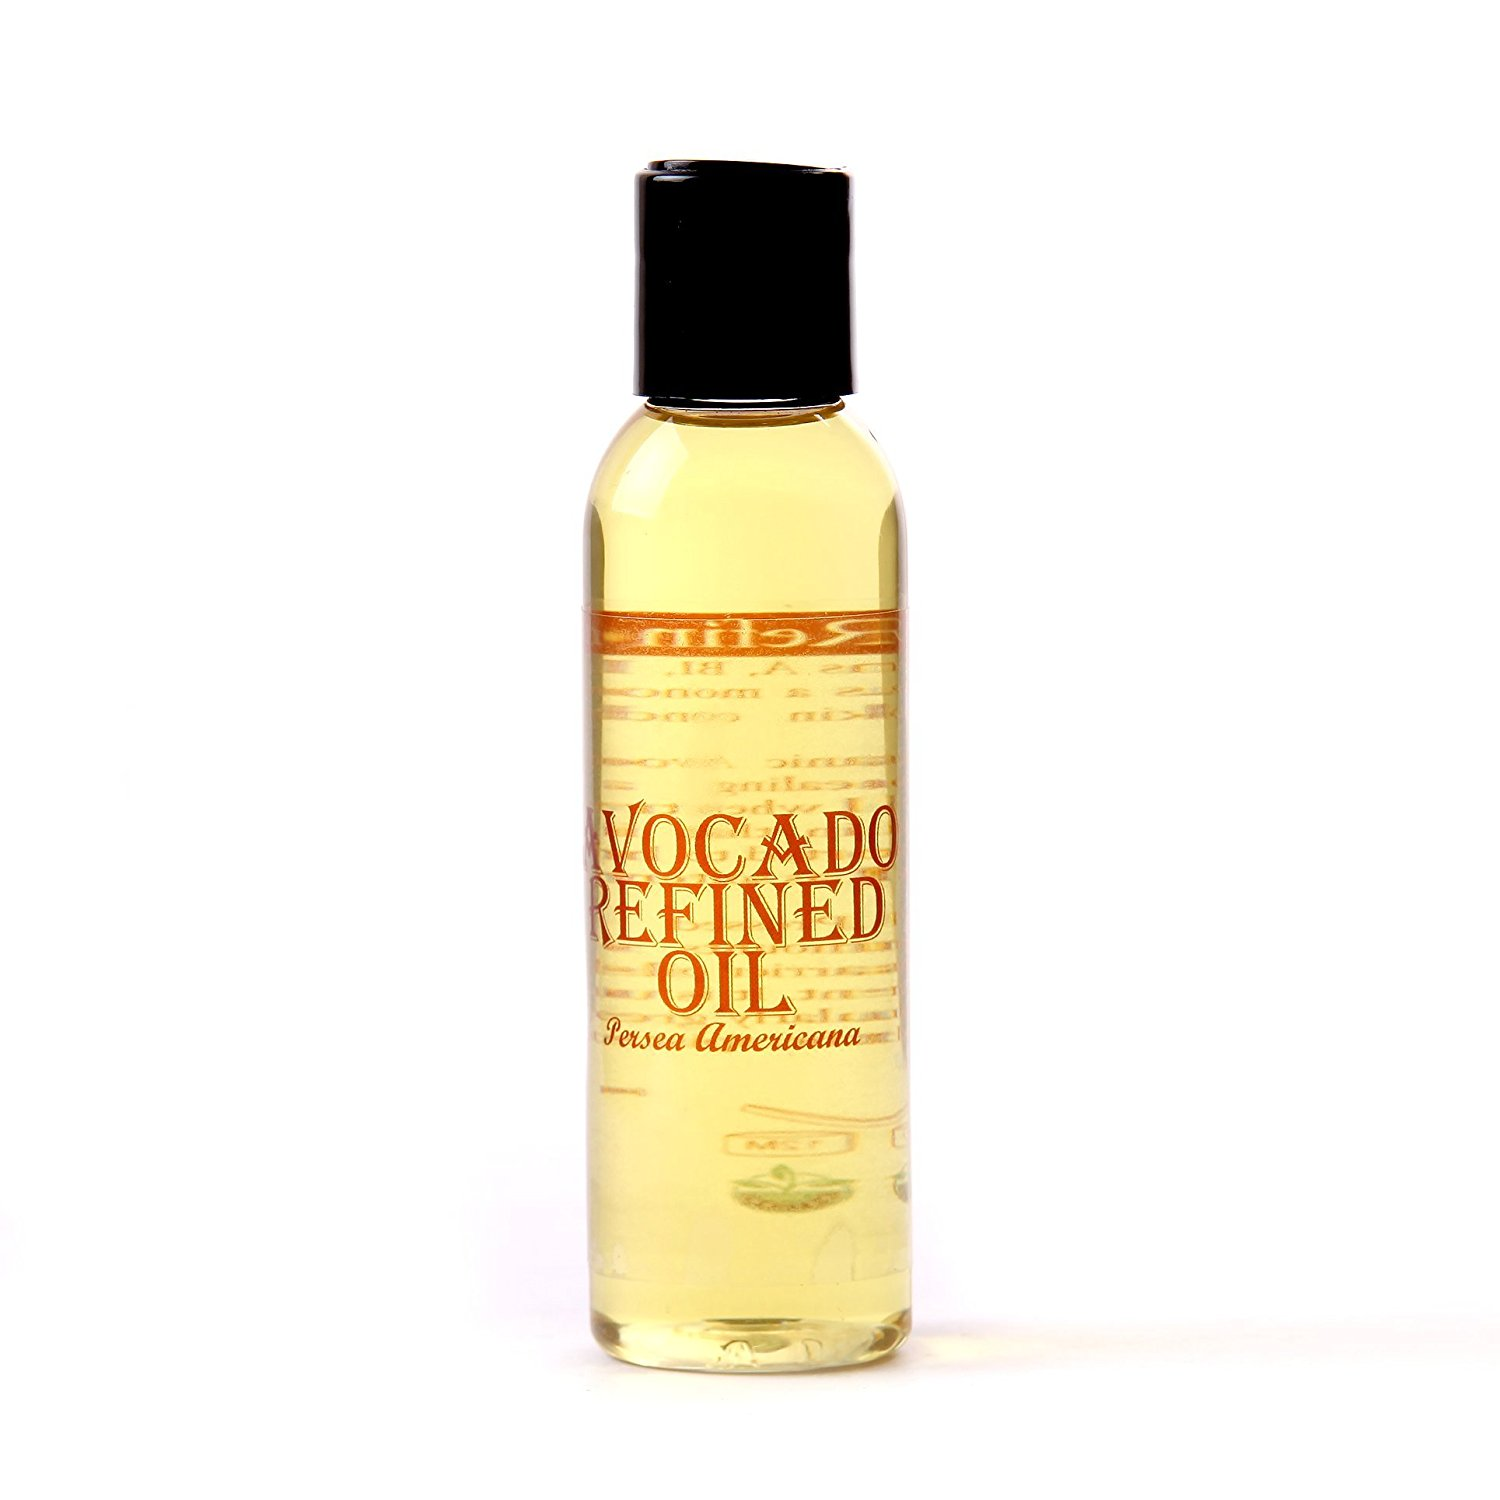 Avocado Refined Carrier Oil - 250ml - 100% Pure